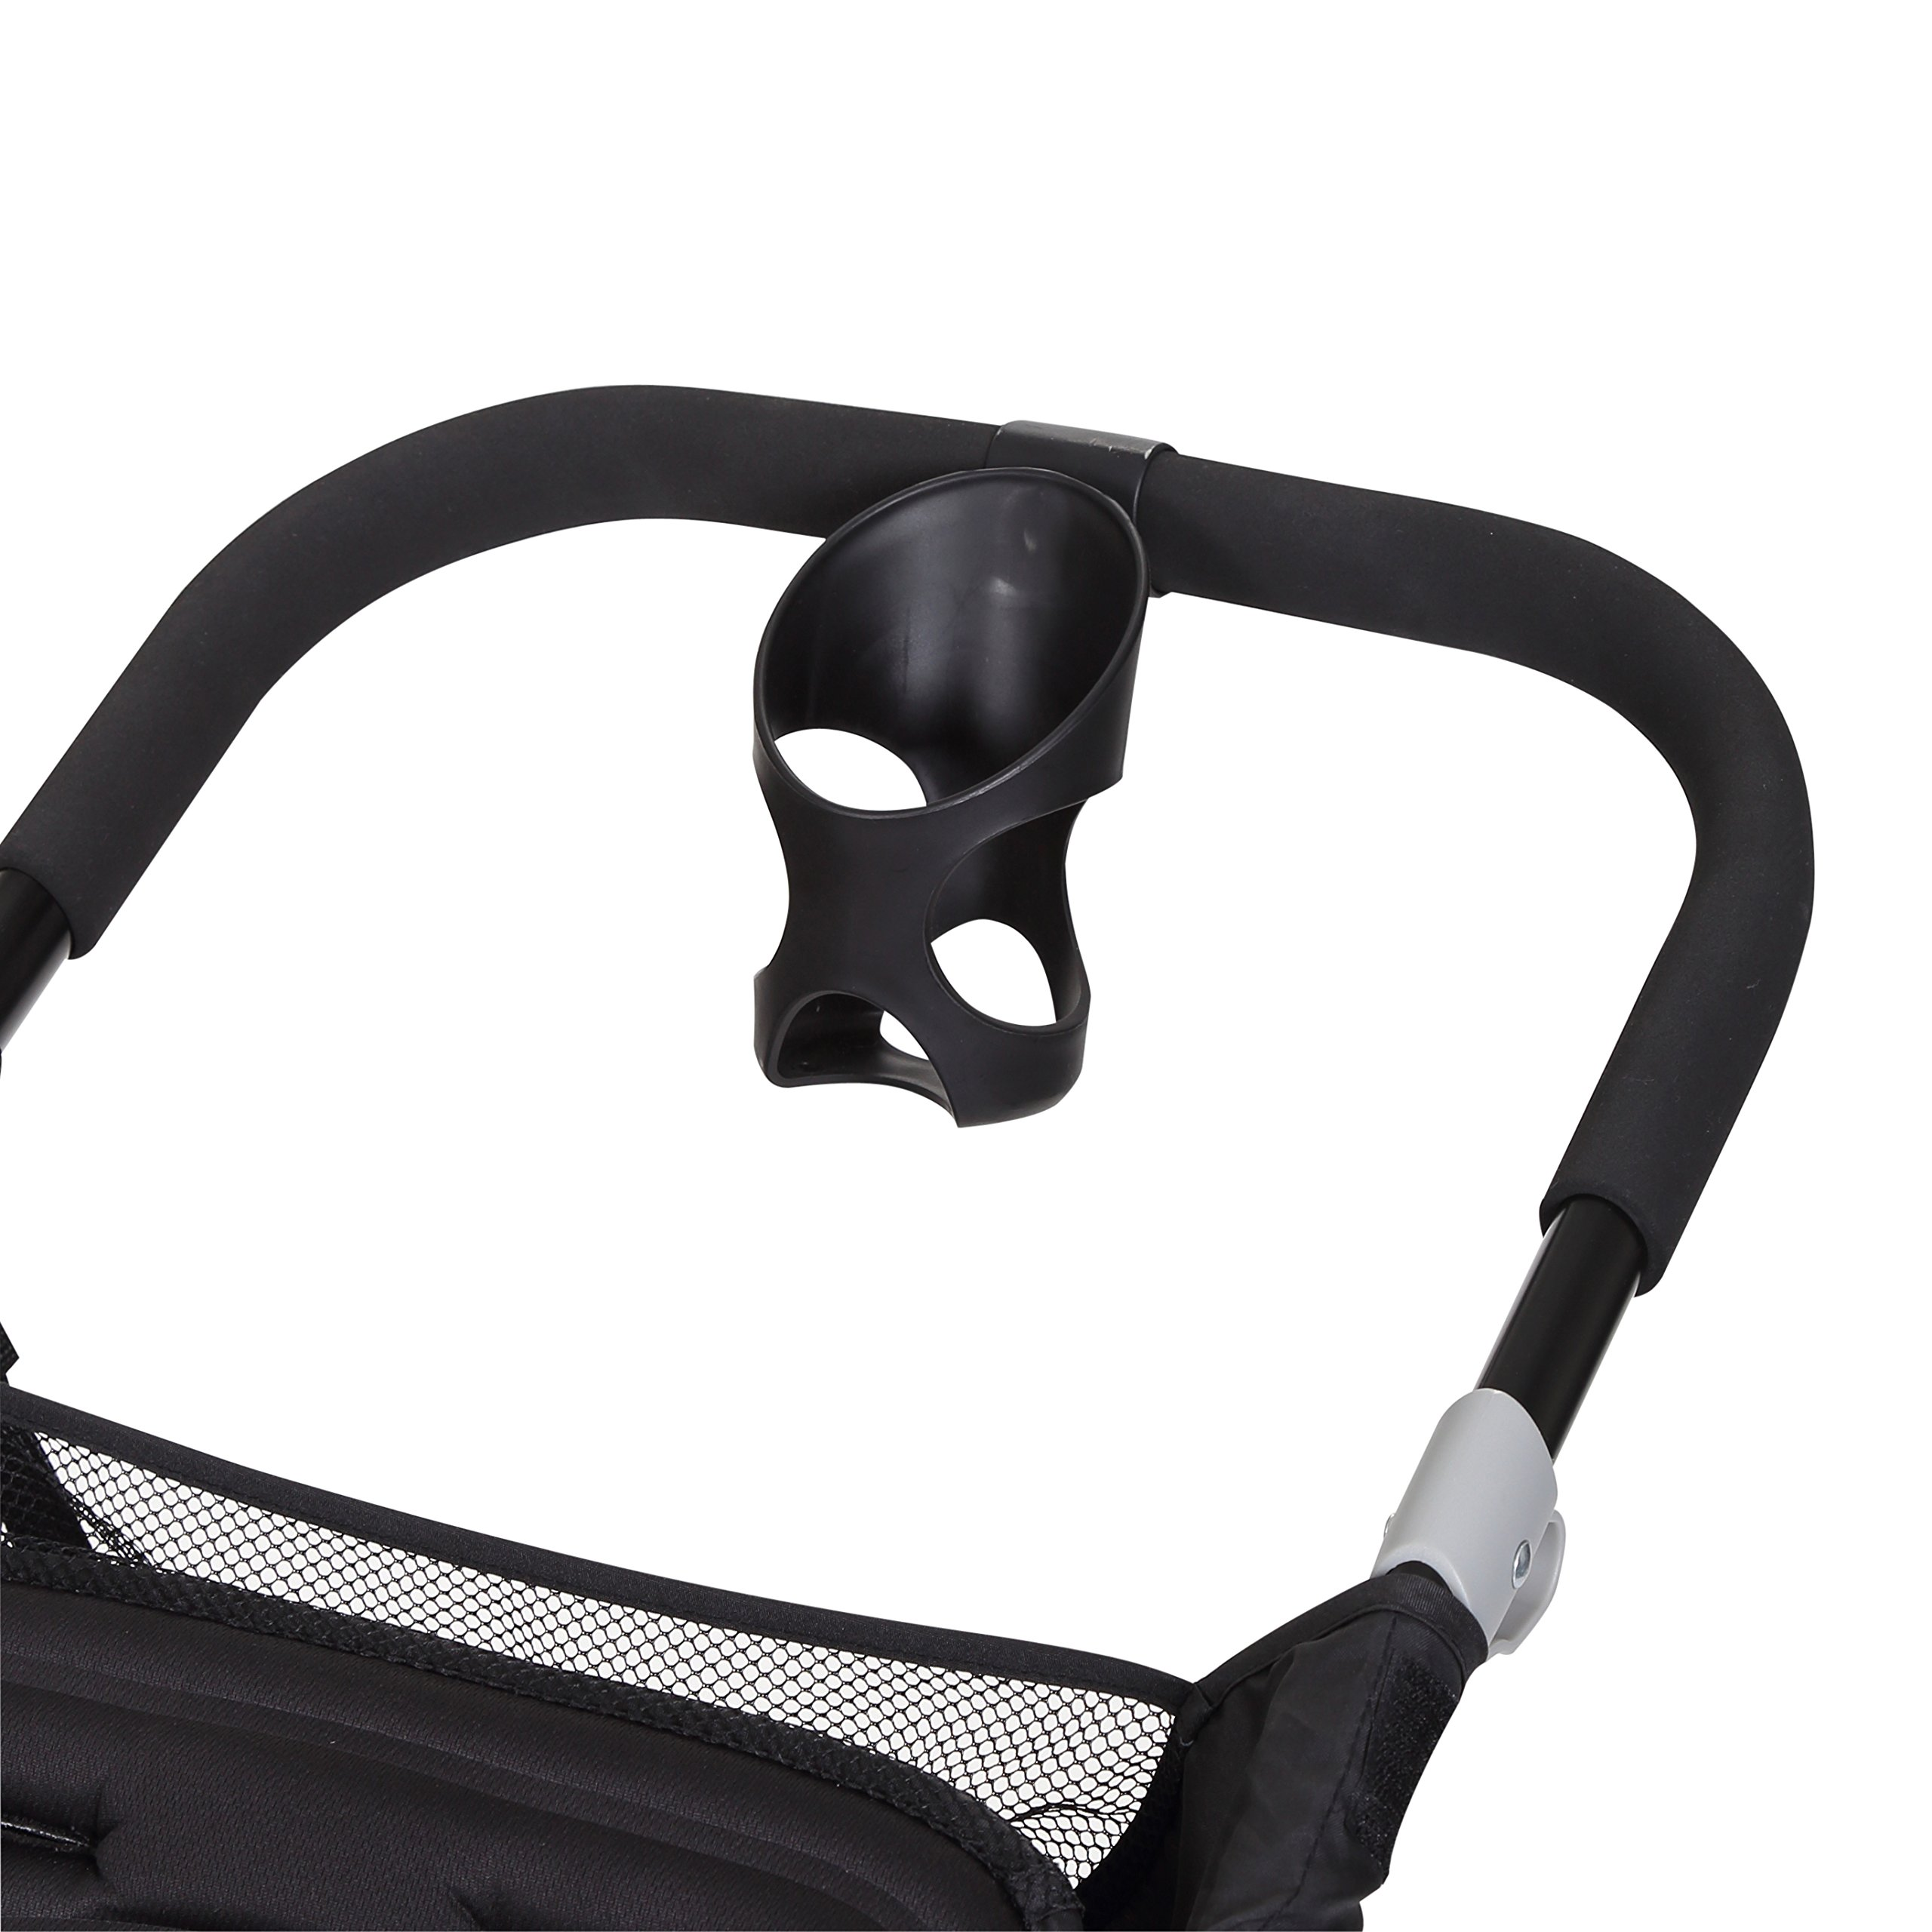 Baby Trend Stealth Jogging Stroller, Alloy by Baby Trend (Image #4)